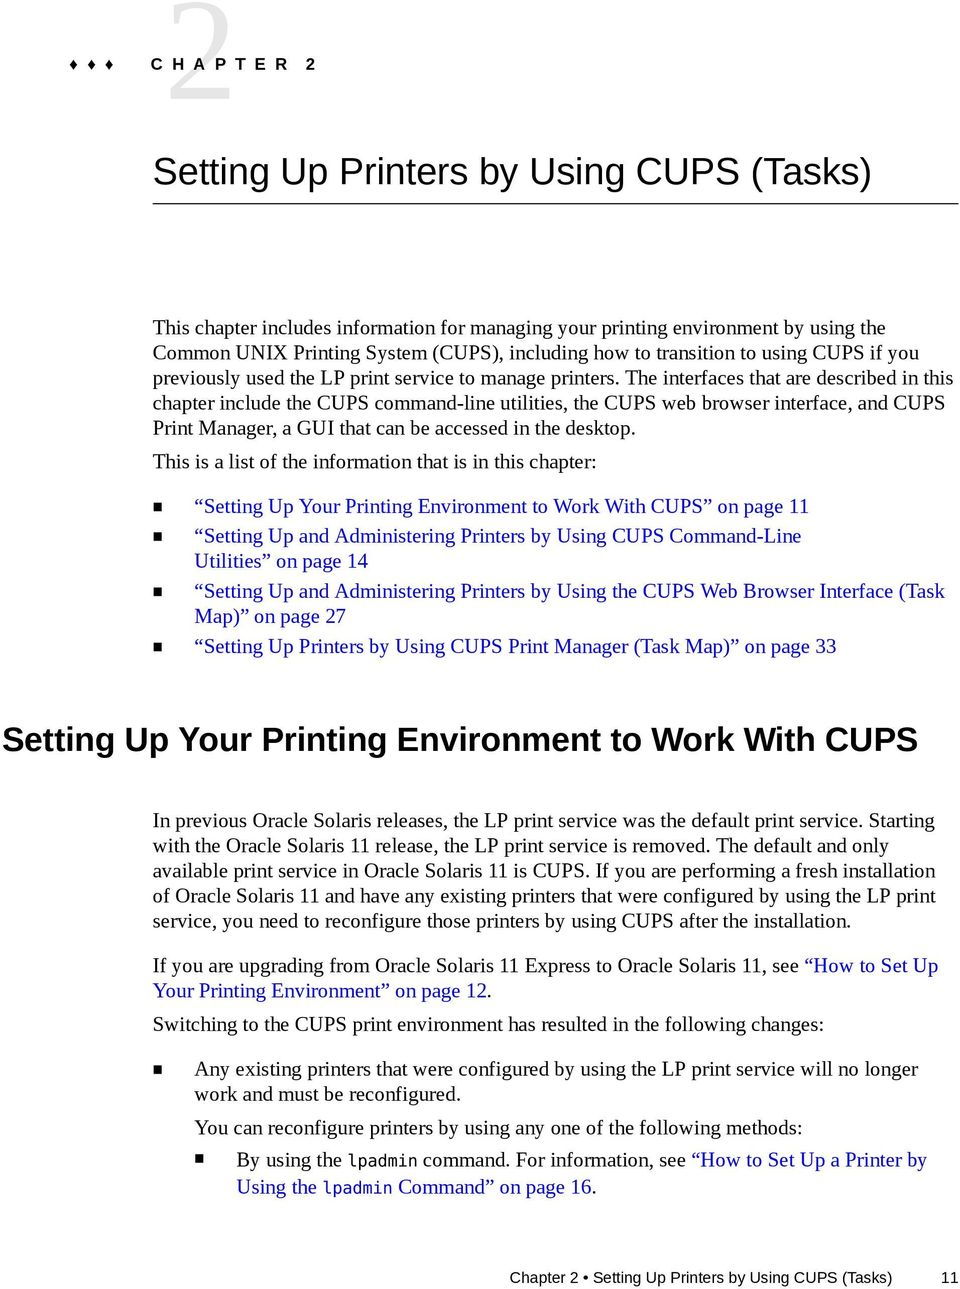 Configuring and Managing Printing in Oracle Solaris PDF